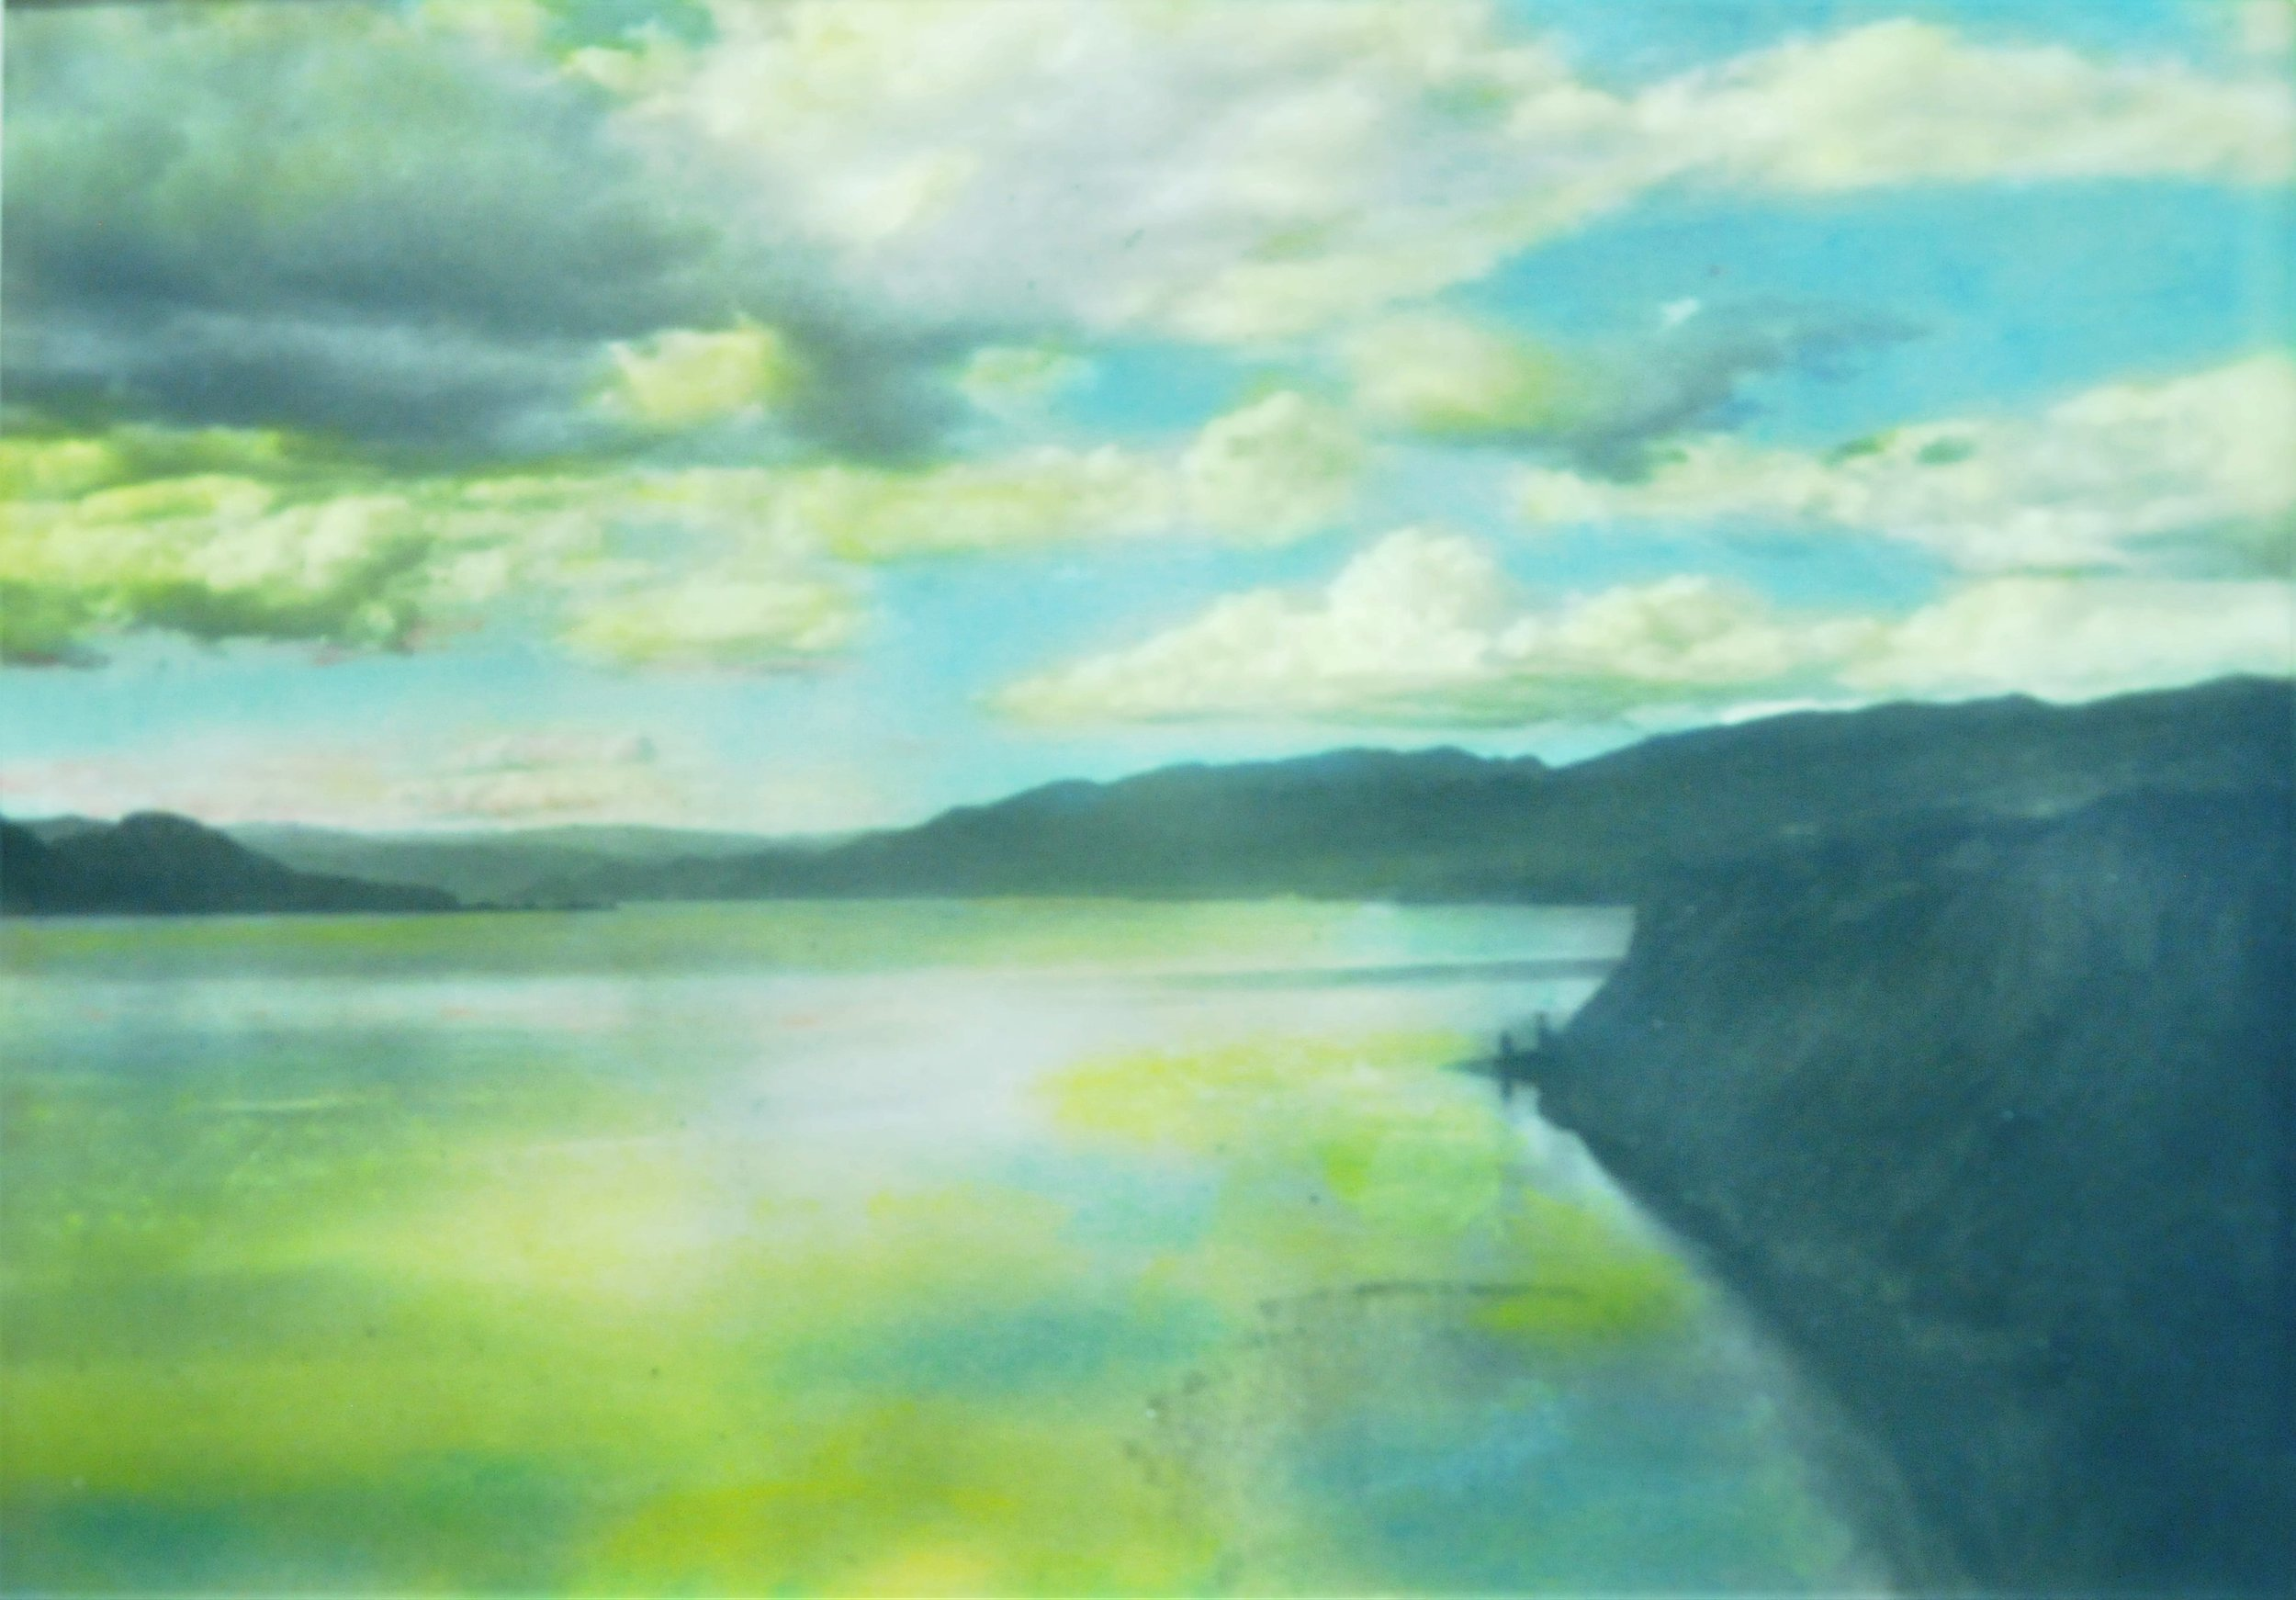 Evening on Okanagan Lake, c. 1930s, Victor Russell, tinted photograph, 2007.03.12.Gift of Kirsten & Ron Candy.